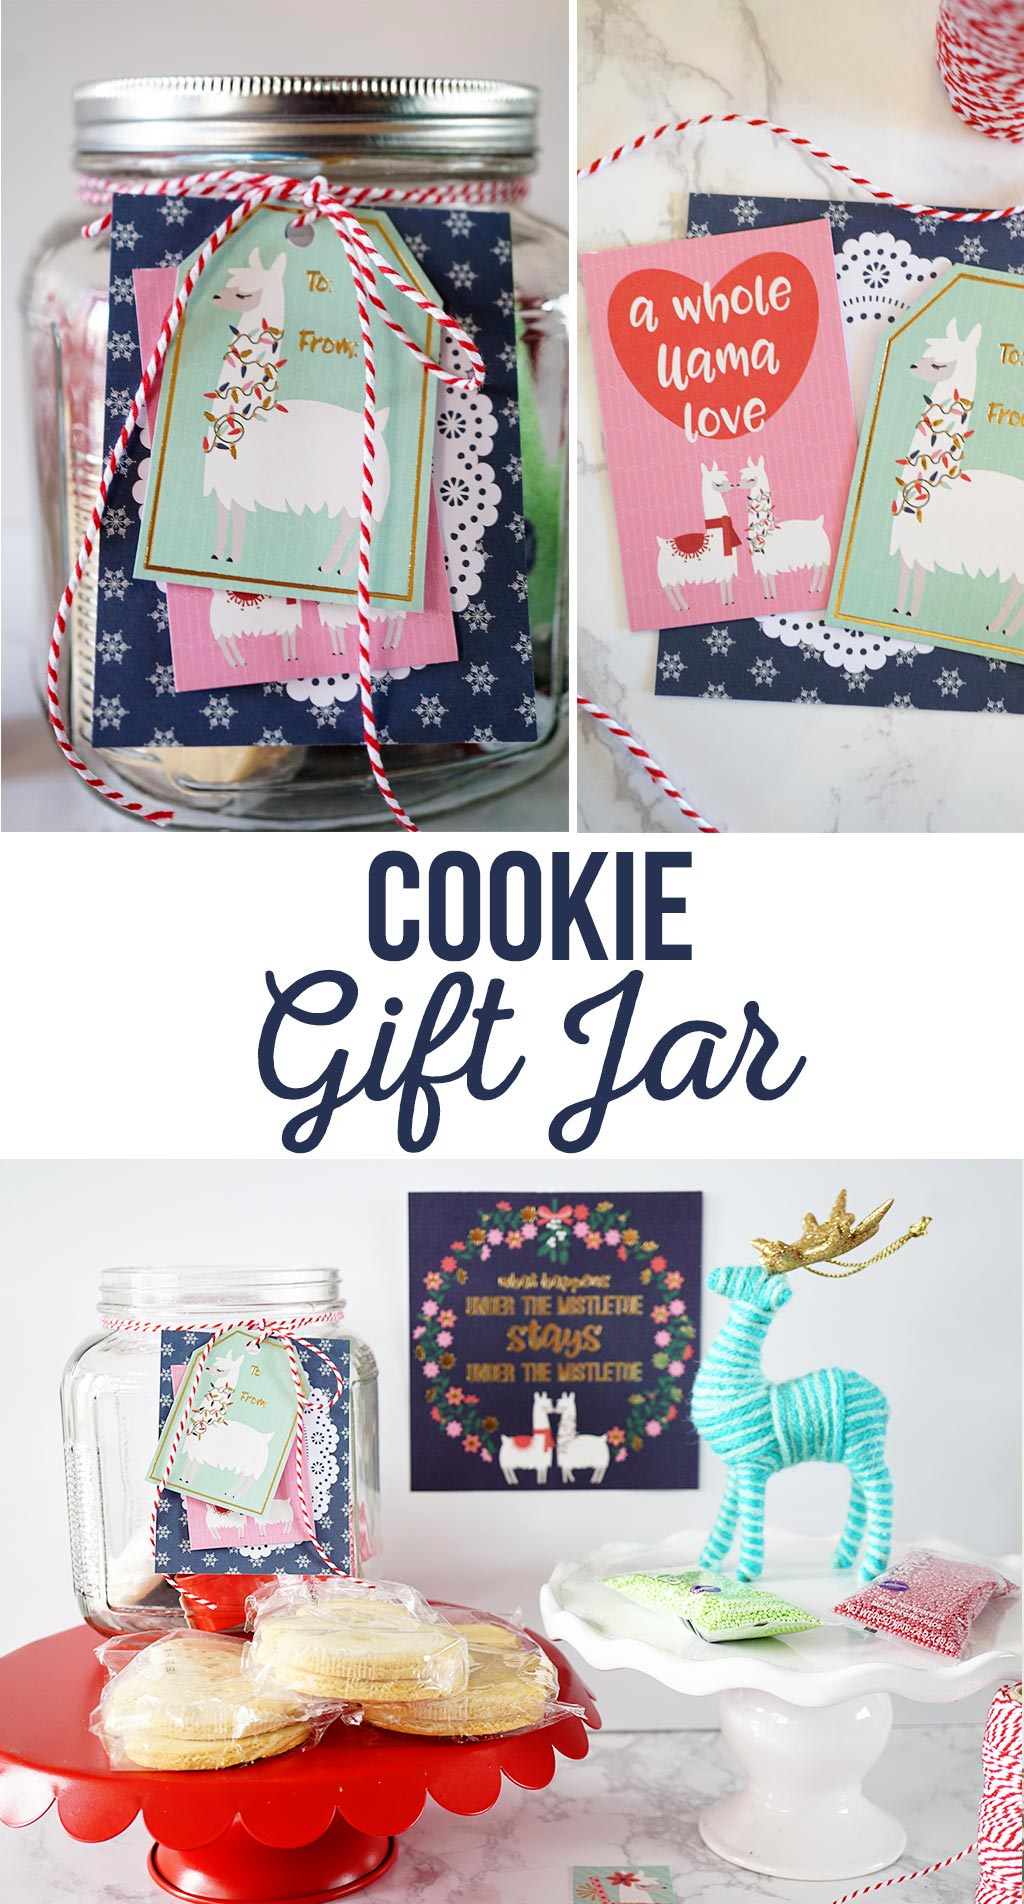 Cookie Gift Jar Idea